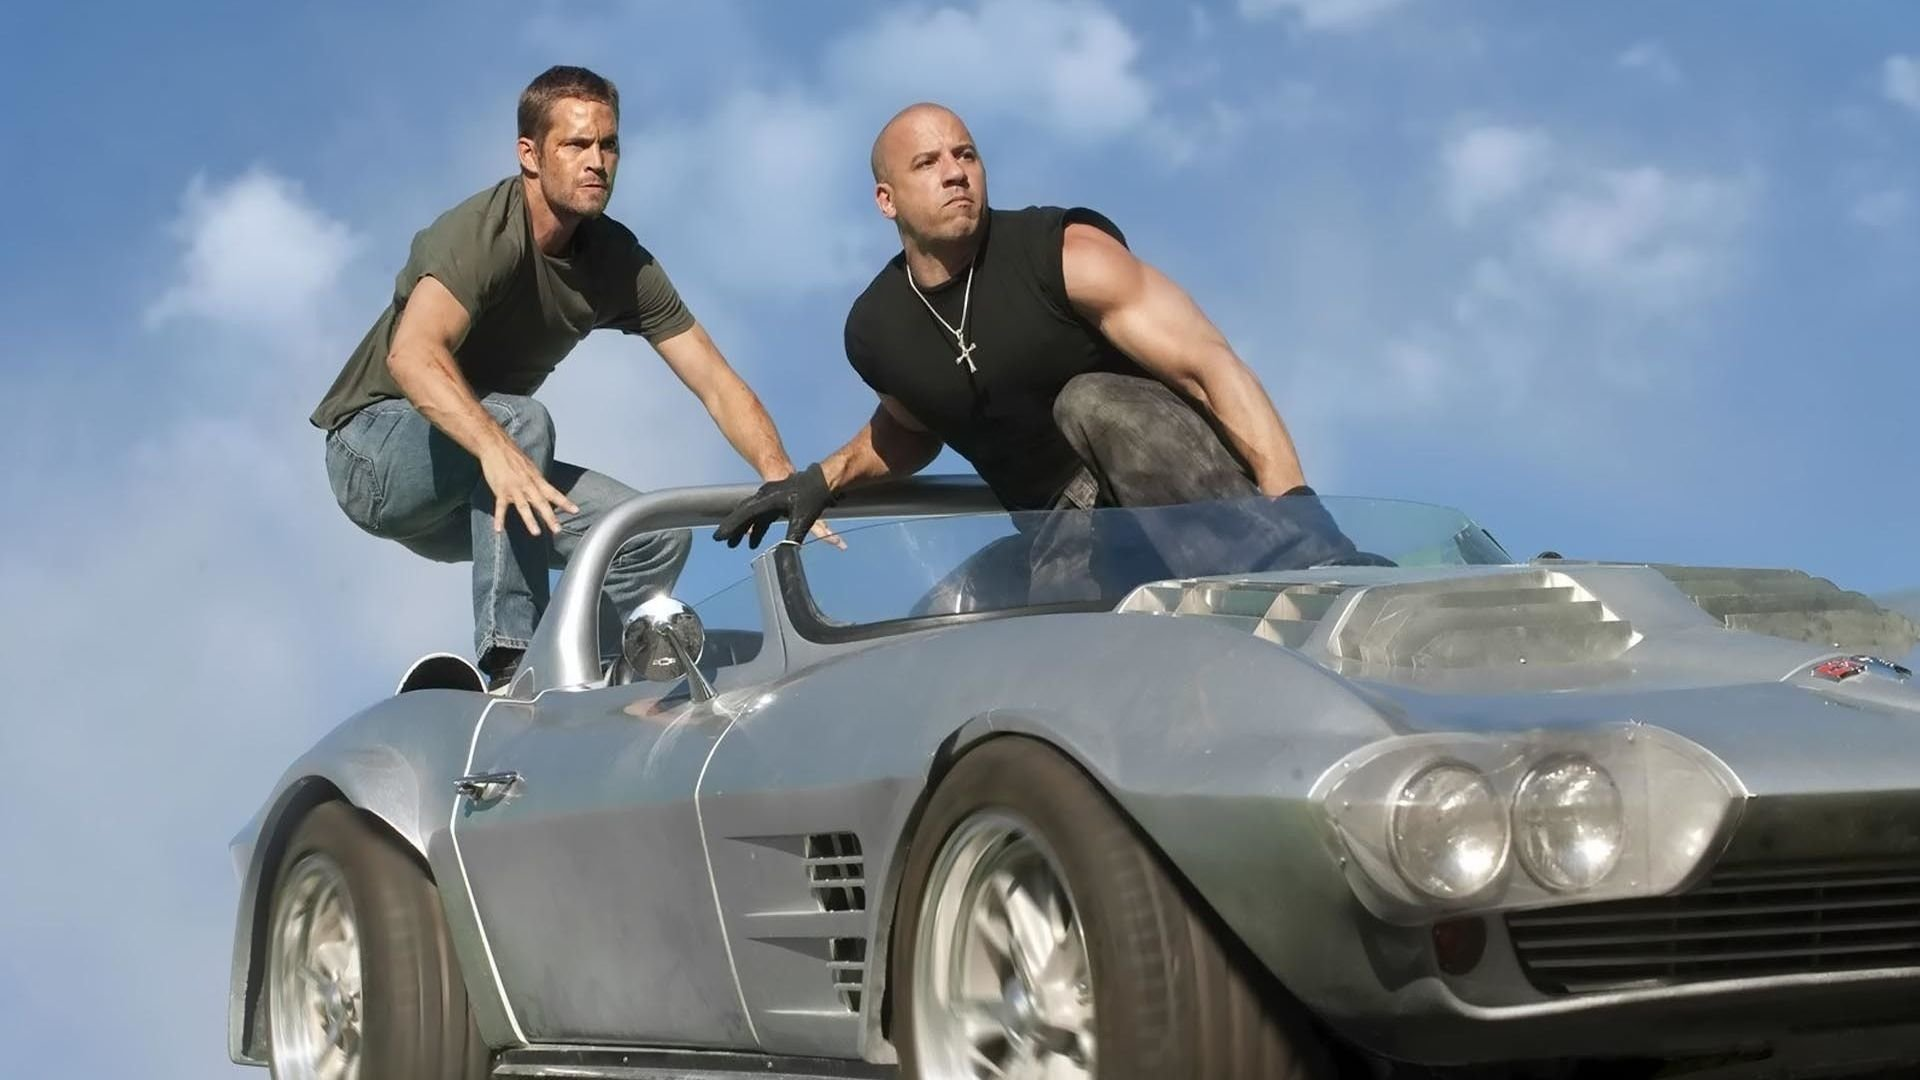 Best Fast And Furious 7 Wallpaper ID62116 For High Resolution Hd 1920x1080 PC